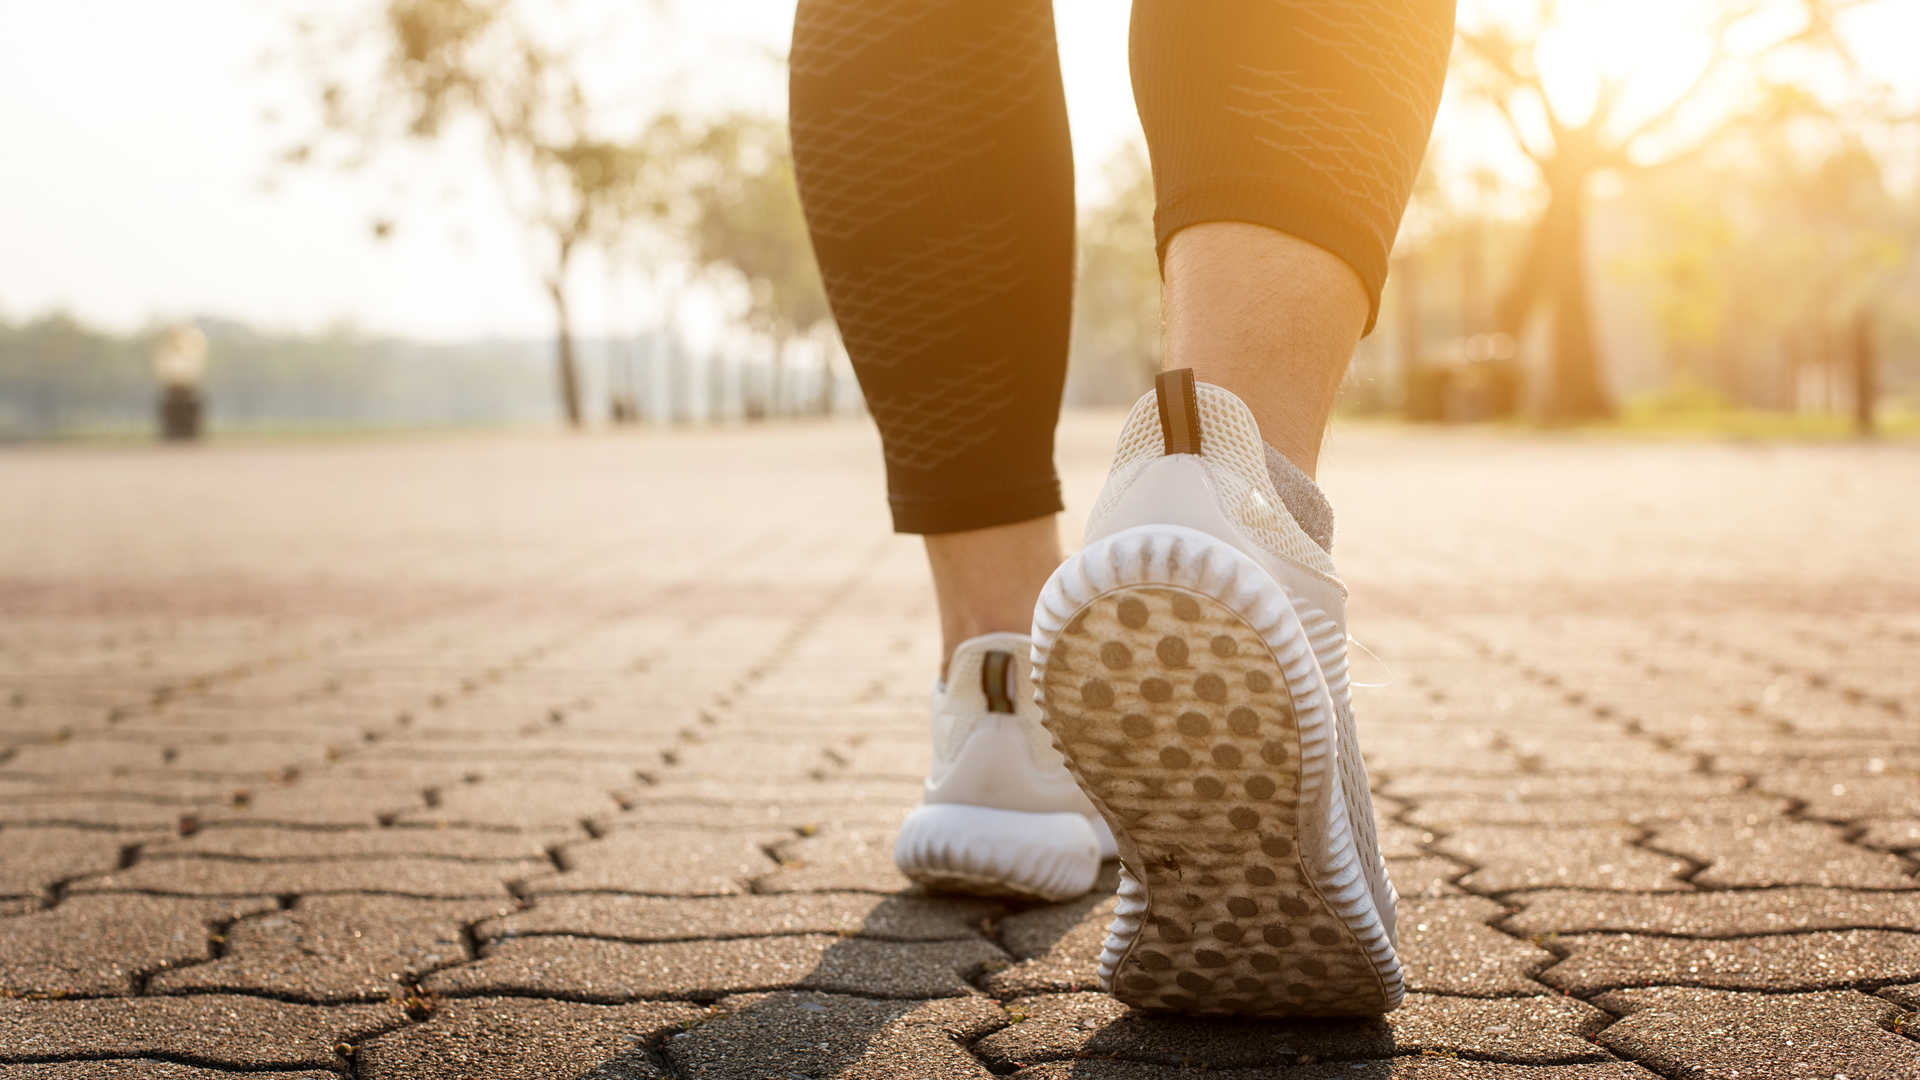 A woman gets ready to workout in this file photo. (Credit: iStock / Getty Images Plus)